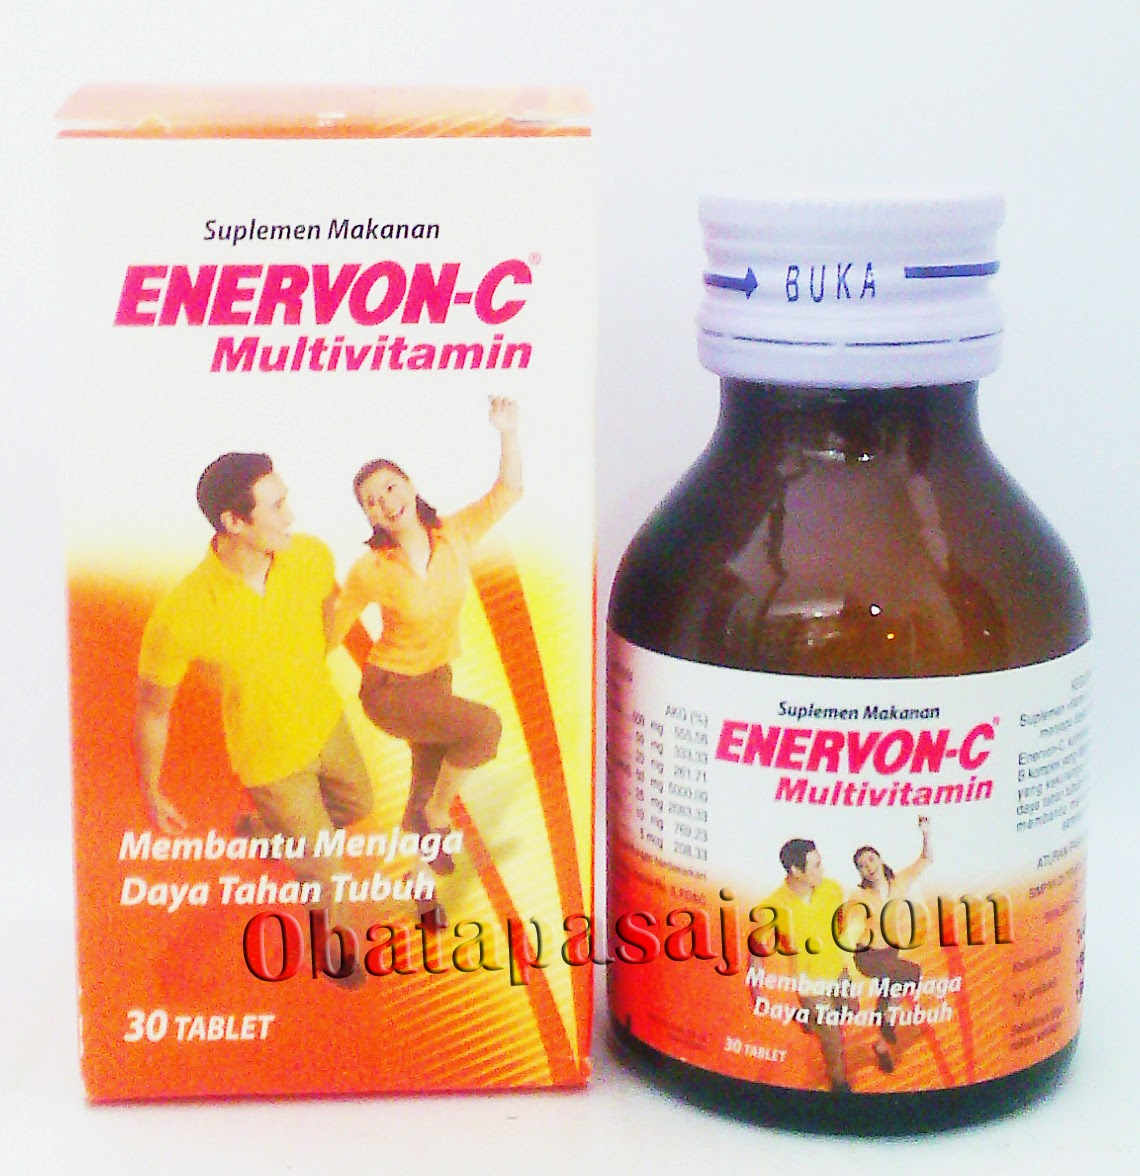 Manfaat dan Komposisi Enervon C Multivitamin